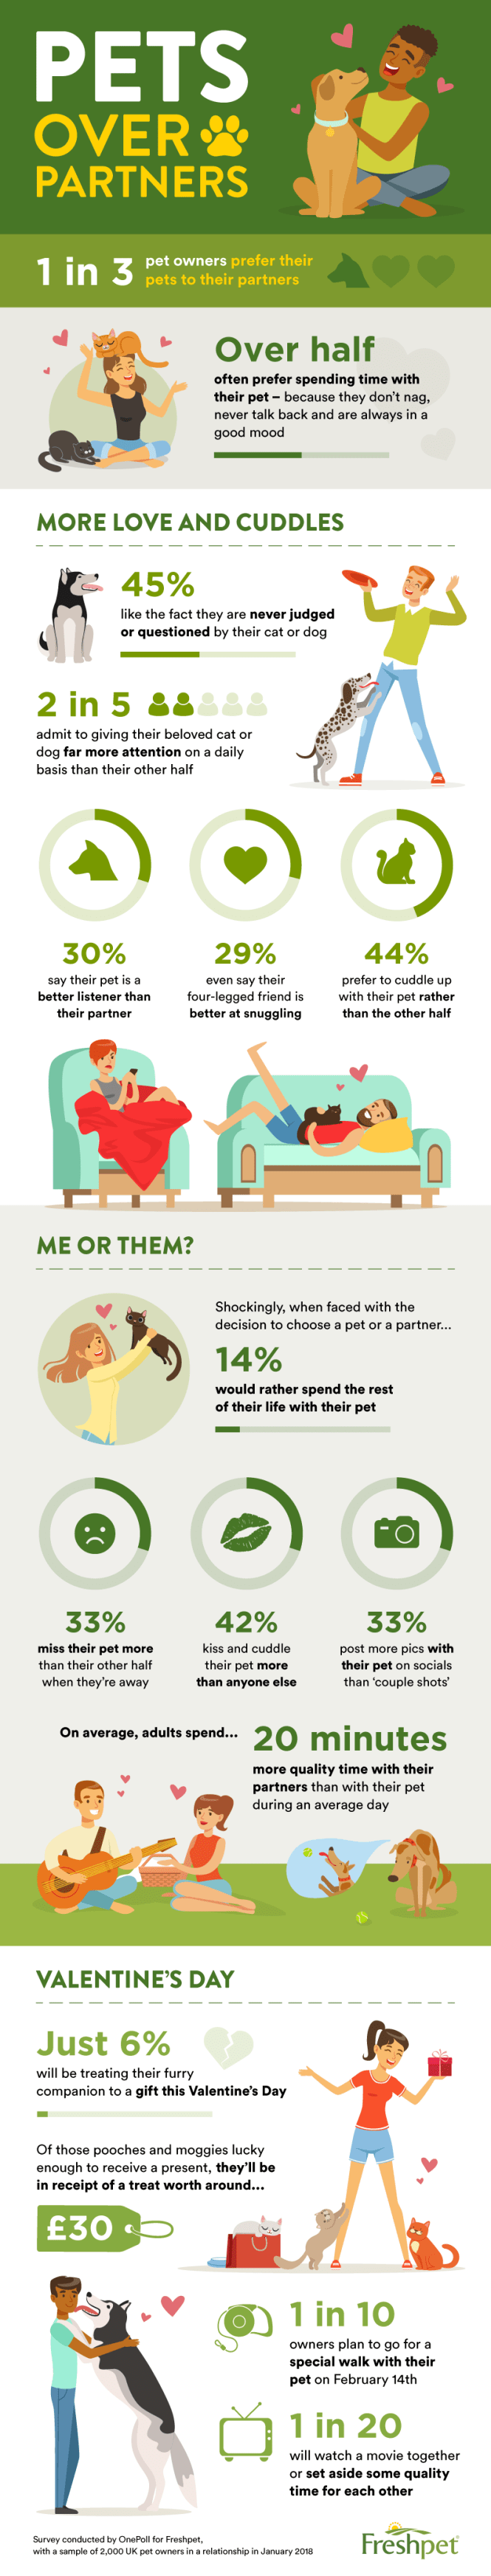 More than a third of owners prefer their pets to their partners